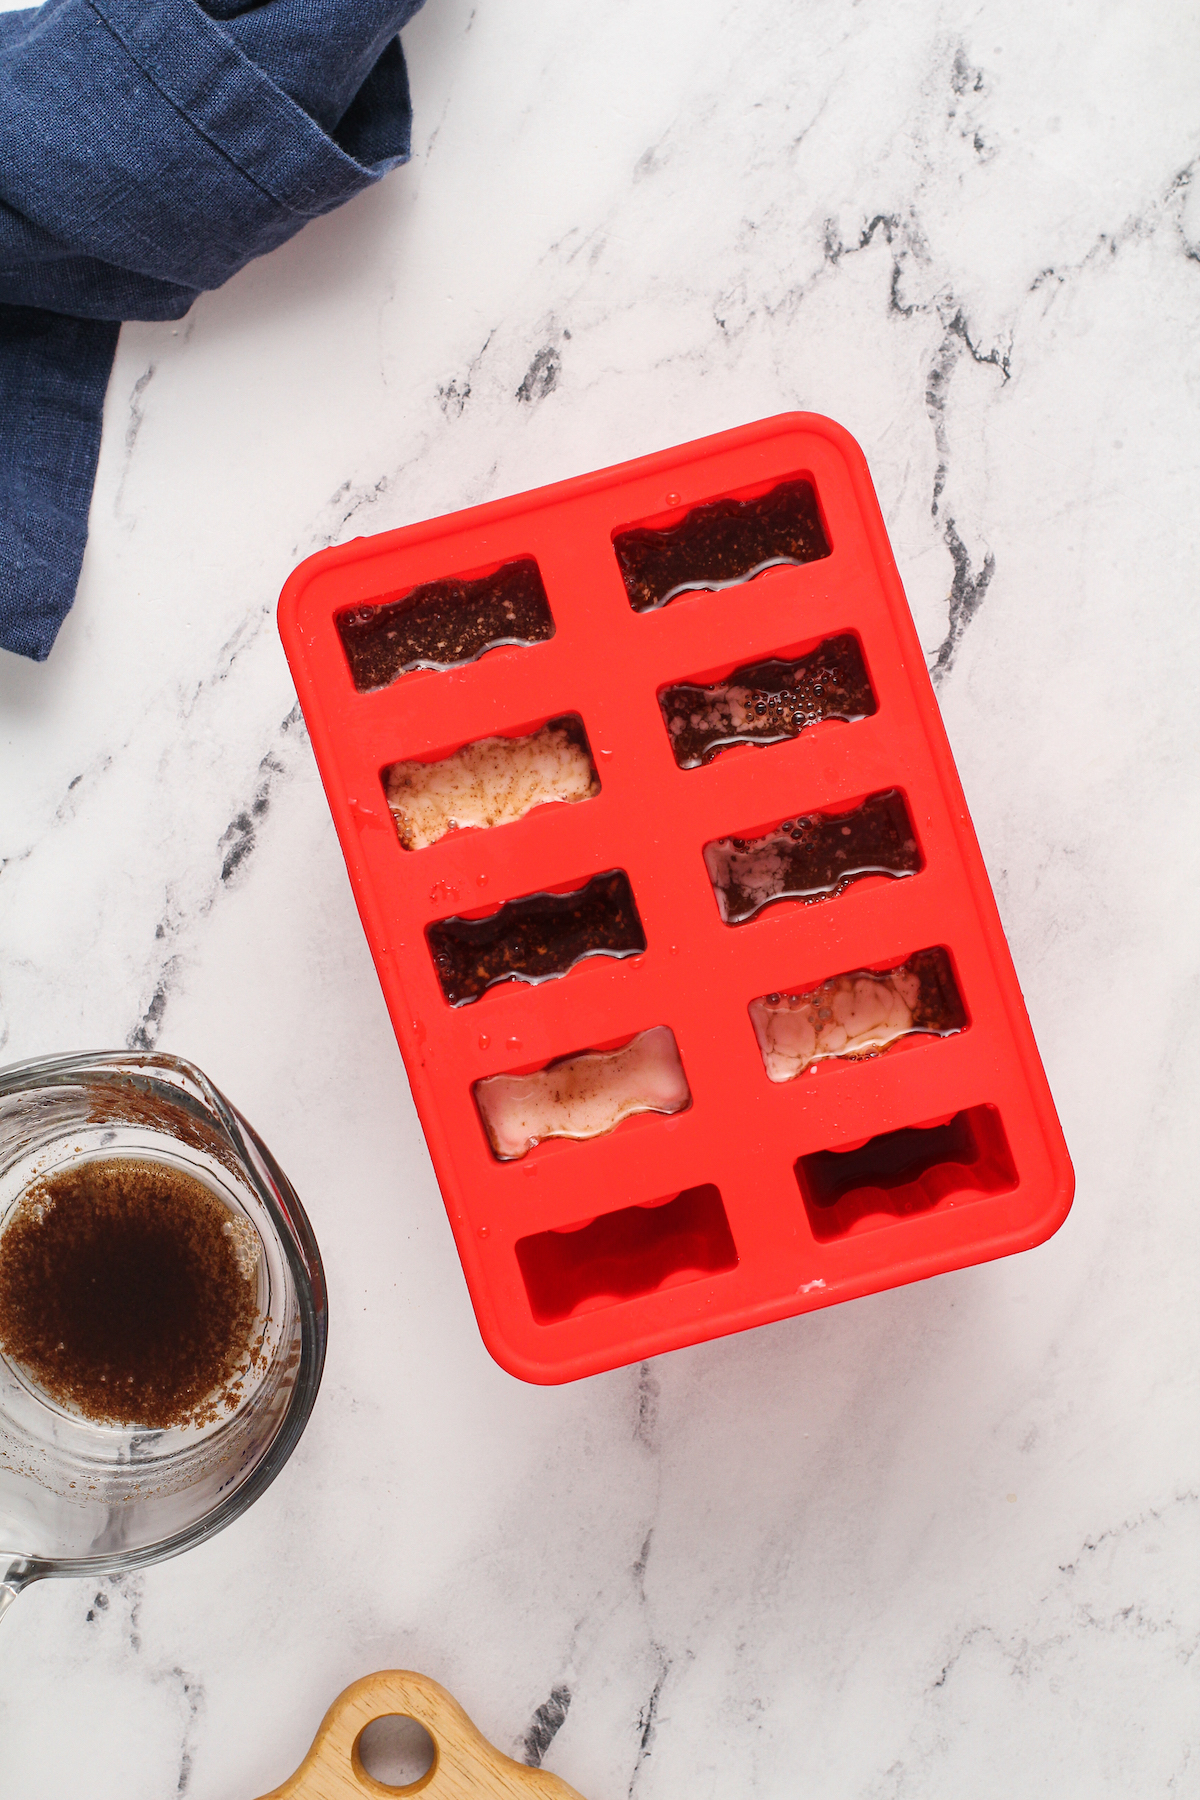 popsicle mold with espresso popsicle mixture on marble